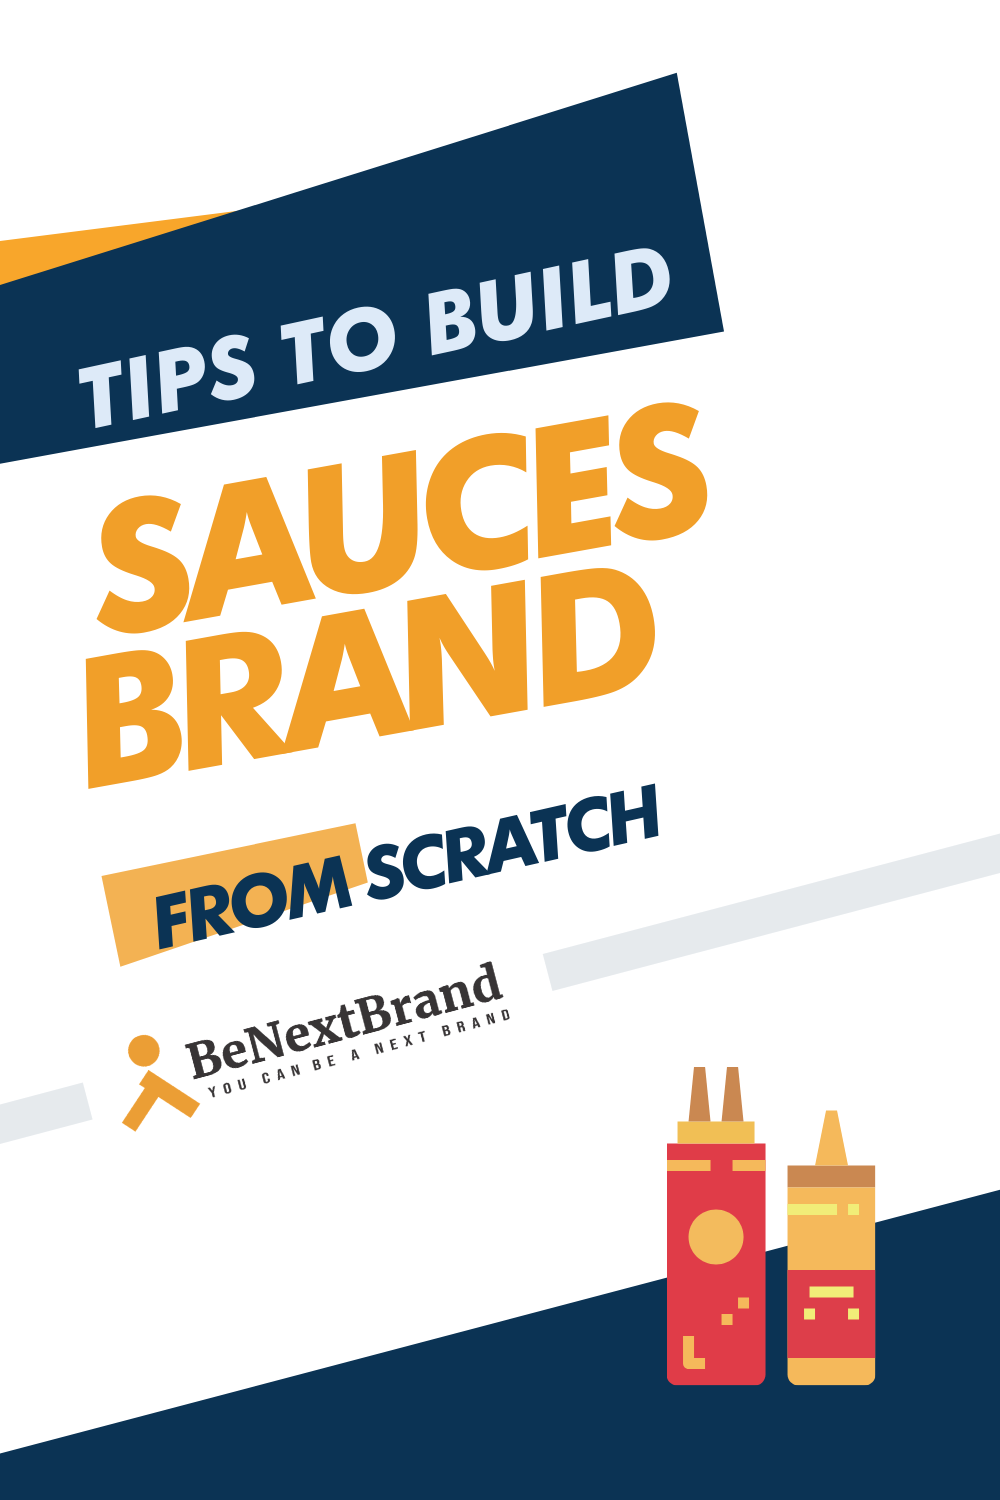 There are many people in our universe who have extraordinary cooking skills. For that, creating and earning through the sauce brand is very much easy process. #TipsToBuildBrands #MakeBrand #startup #NewBrand #Build